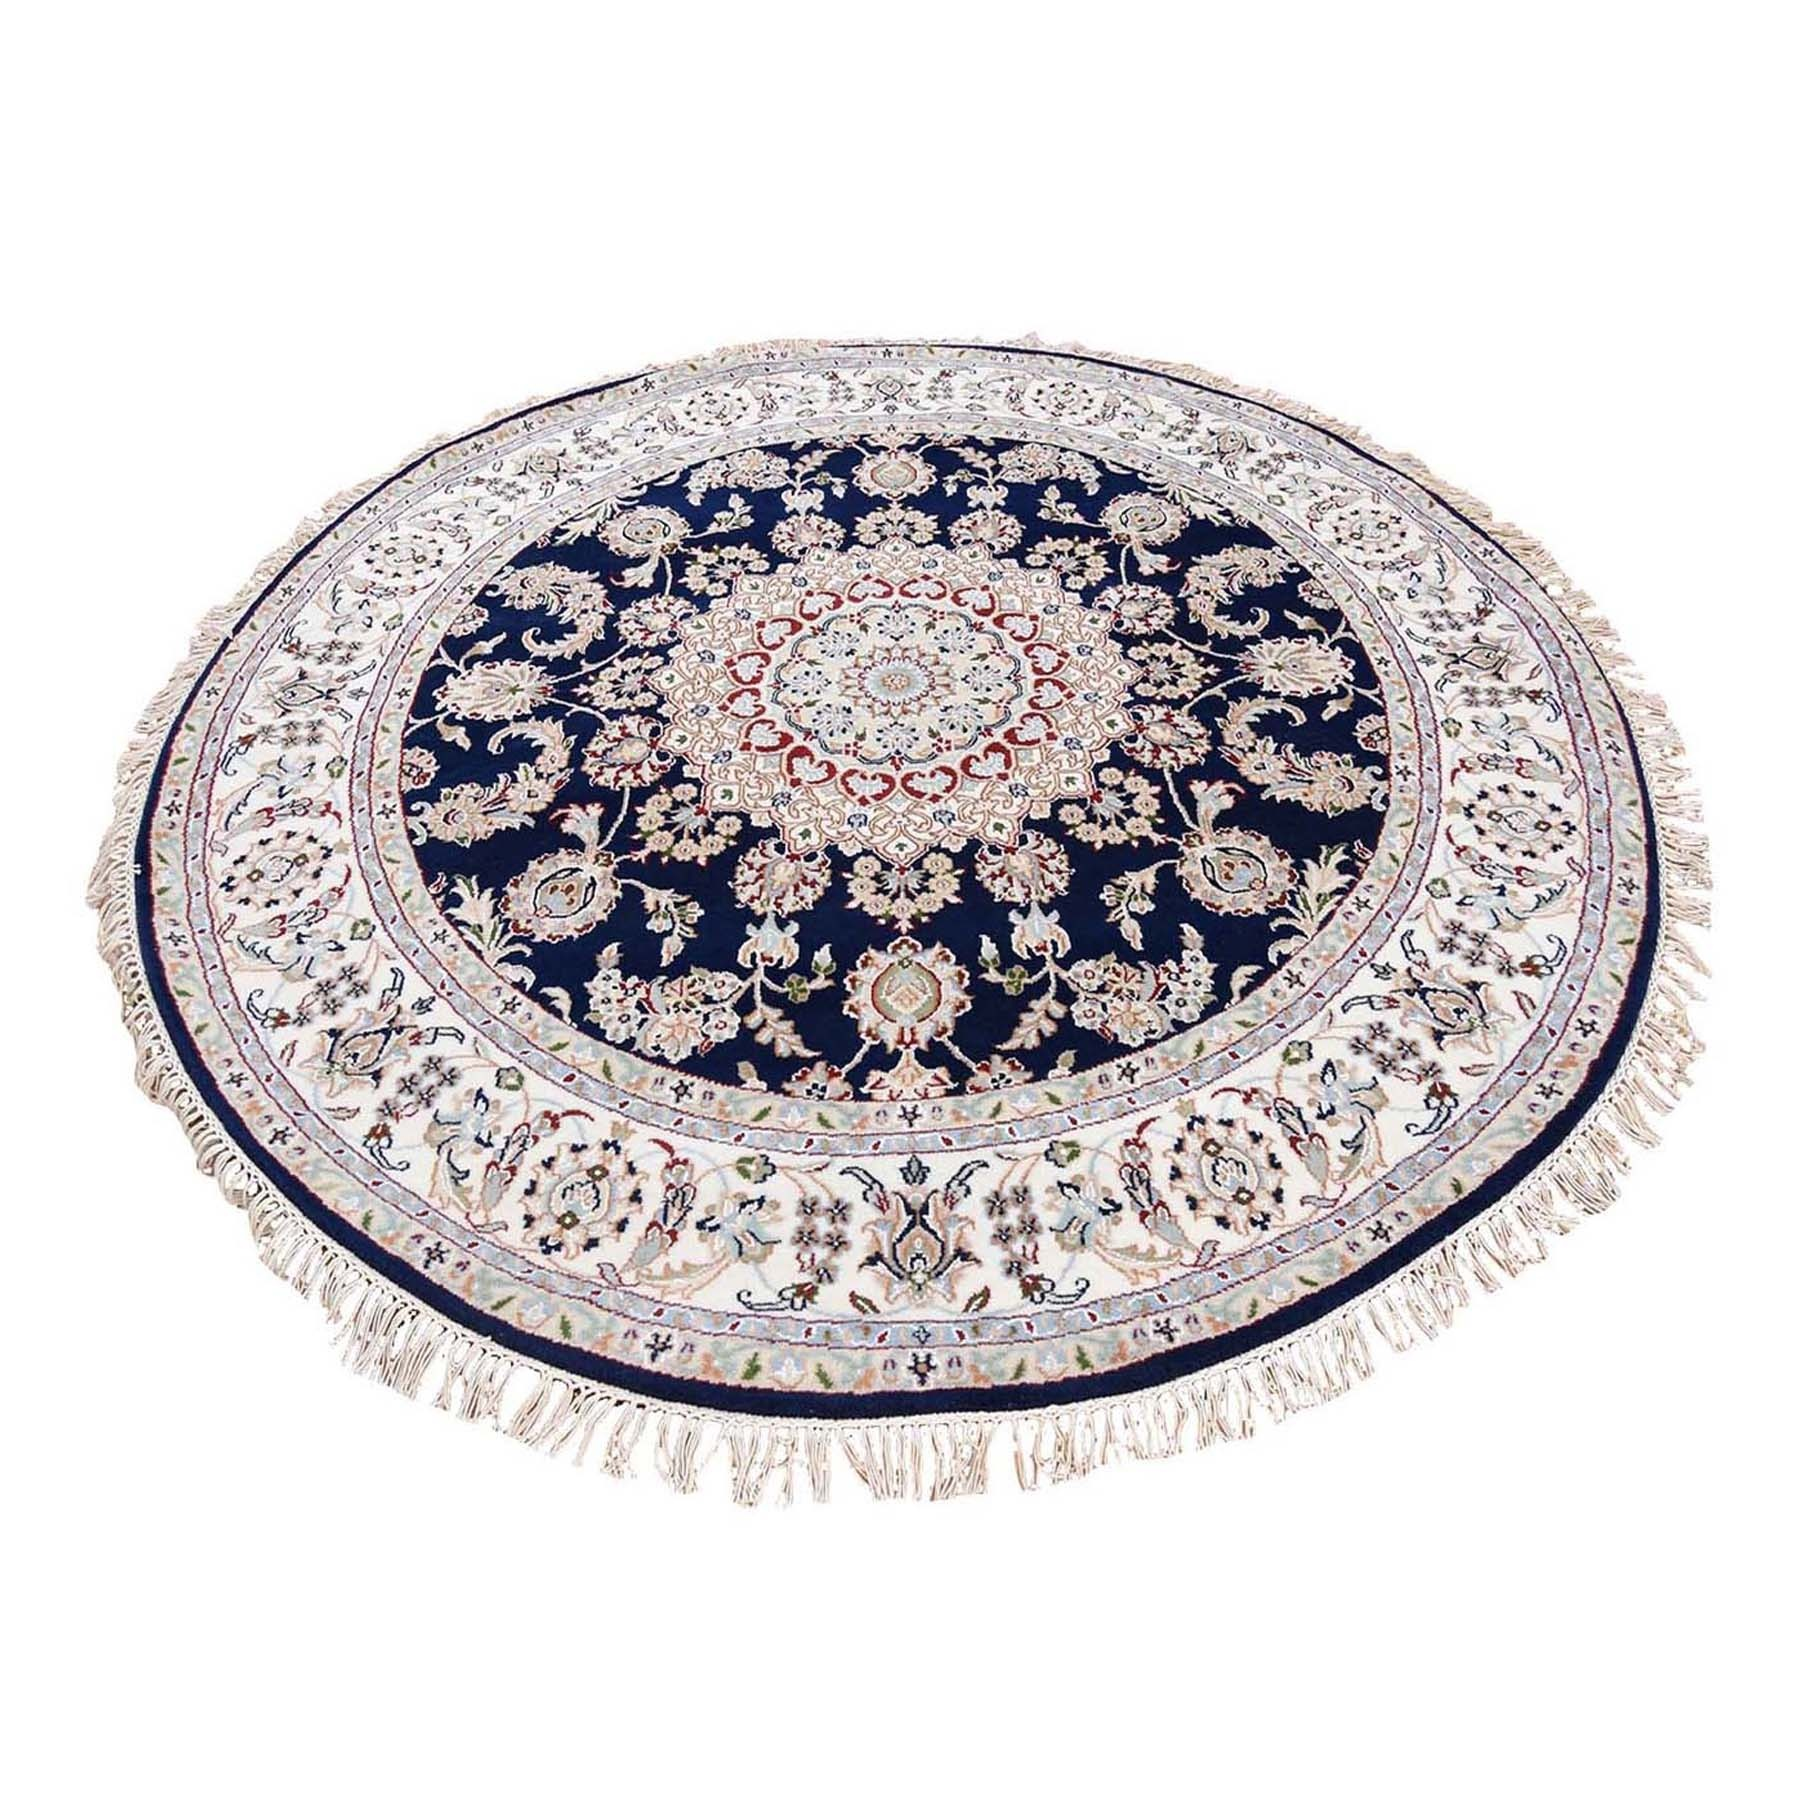 Pirniakan Collection Hand Knotted Blue Rug No: 1119984